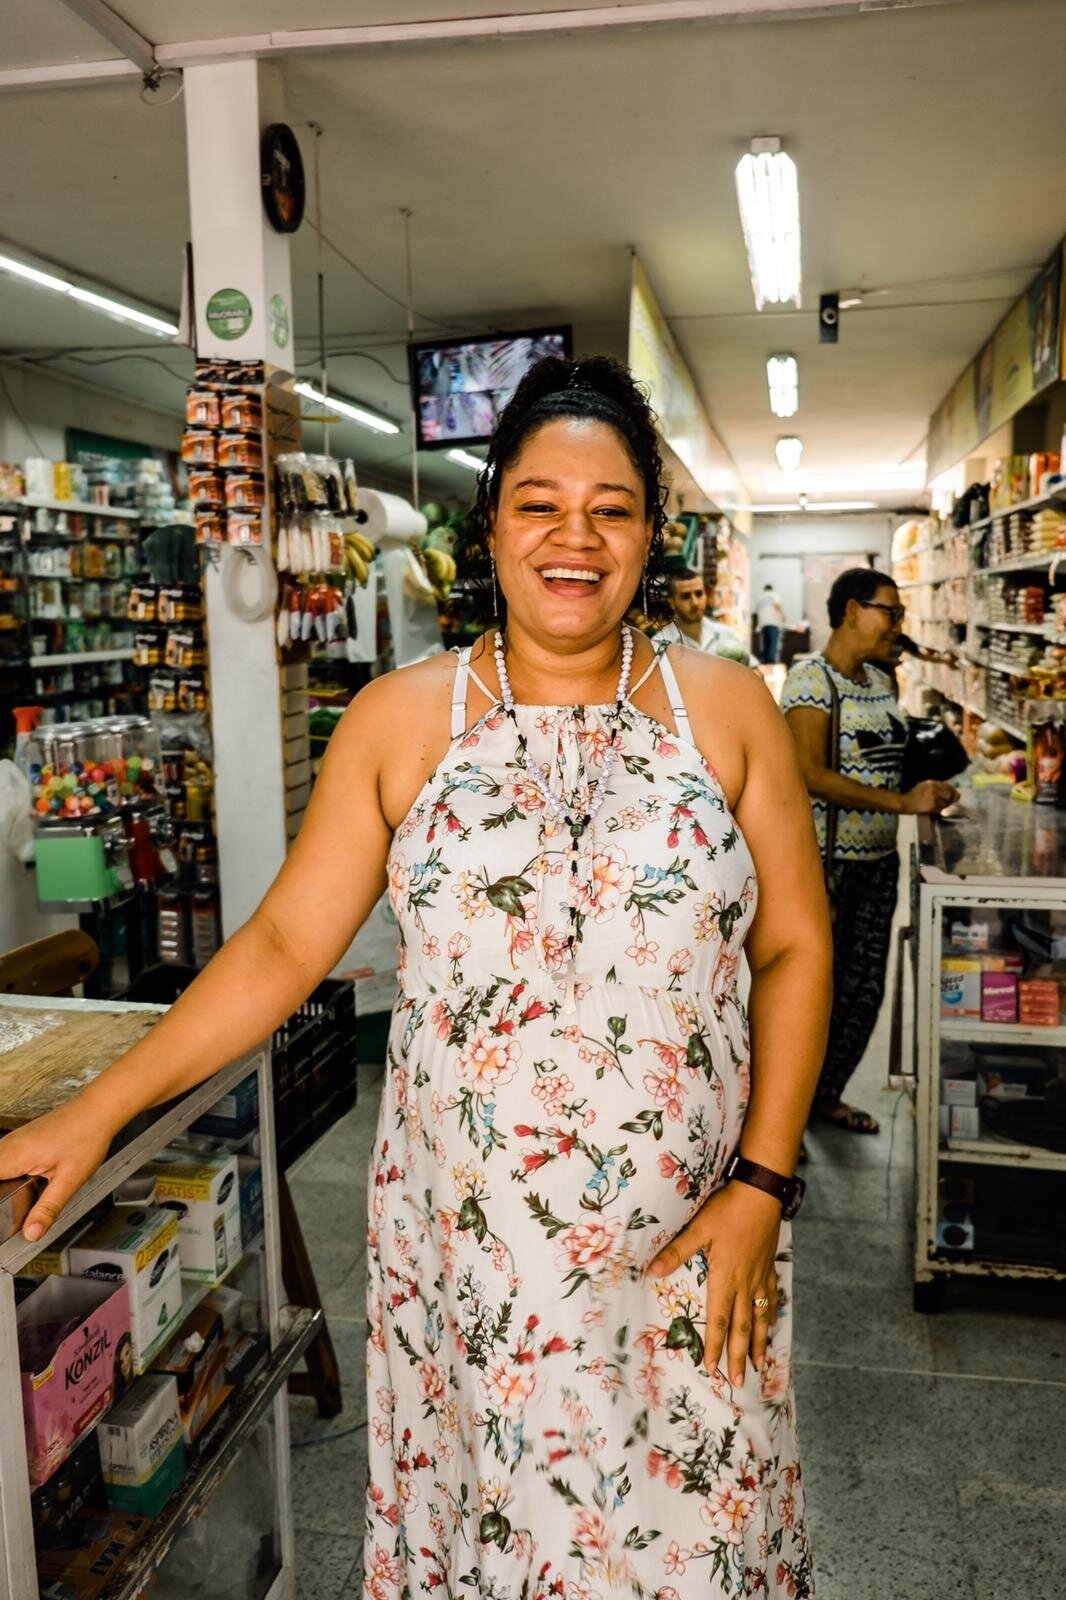 The lady of the supermarket on the square of San Carlos